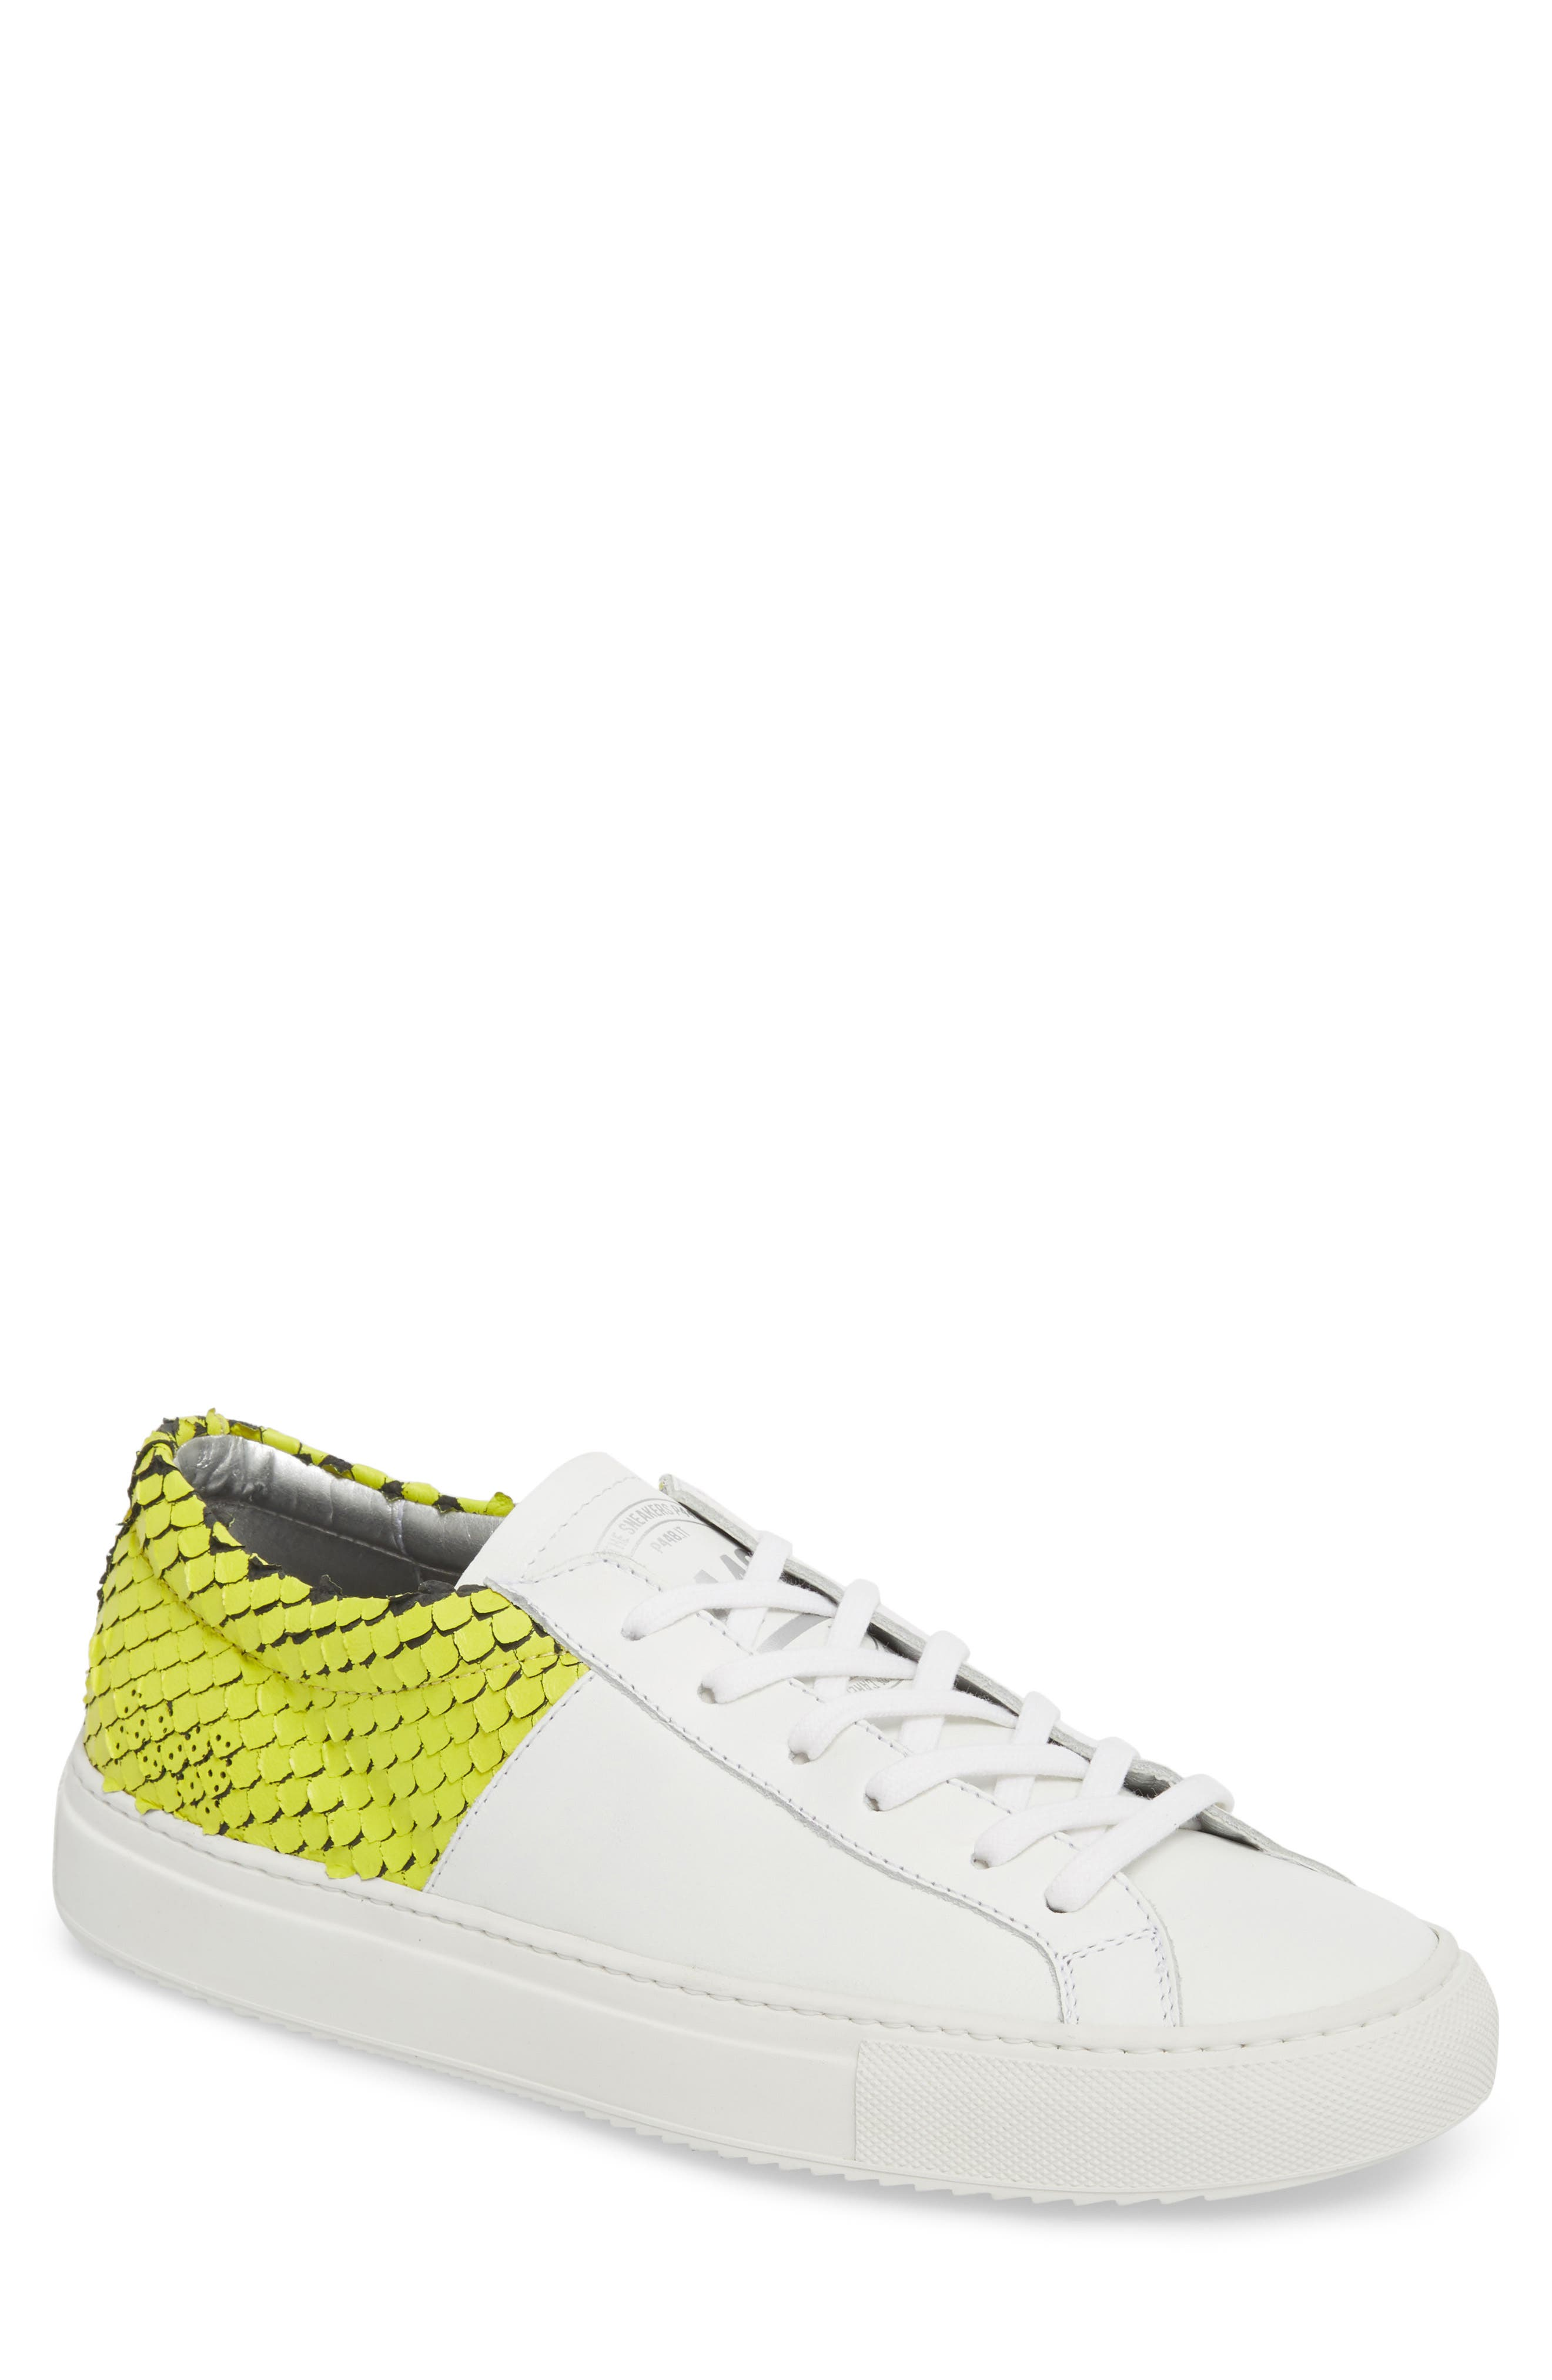 Onec Textured Low Top Sneaker,                             Main thumbnail 1, color,                             Python White